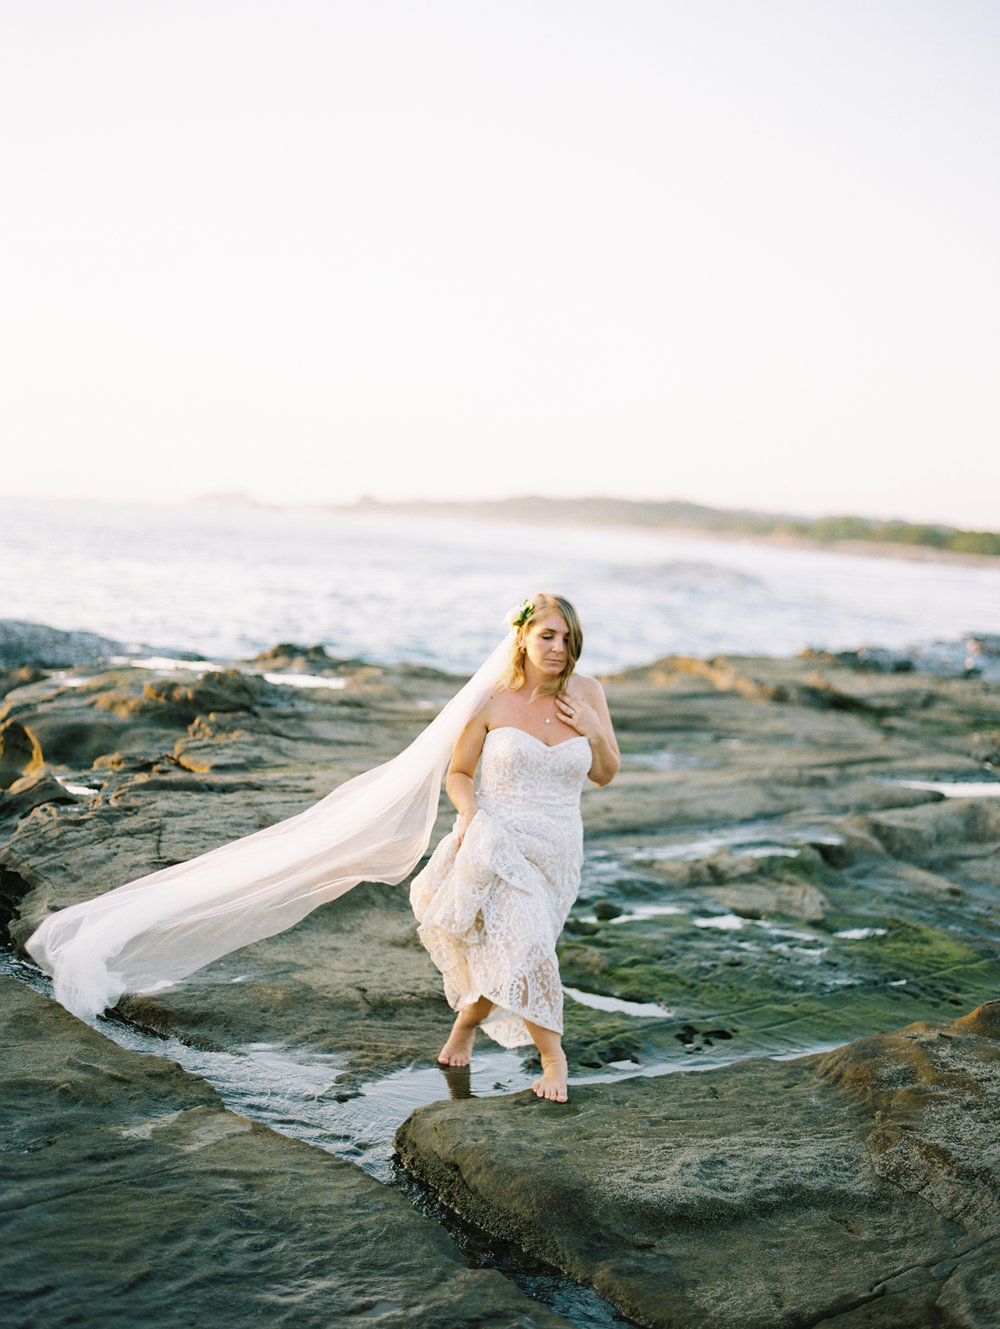 519-fine-art-film-photographer-destination-wedding-nicaragua-jacob+cammye-brumley & wells.jpg